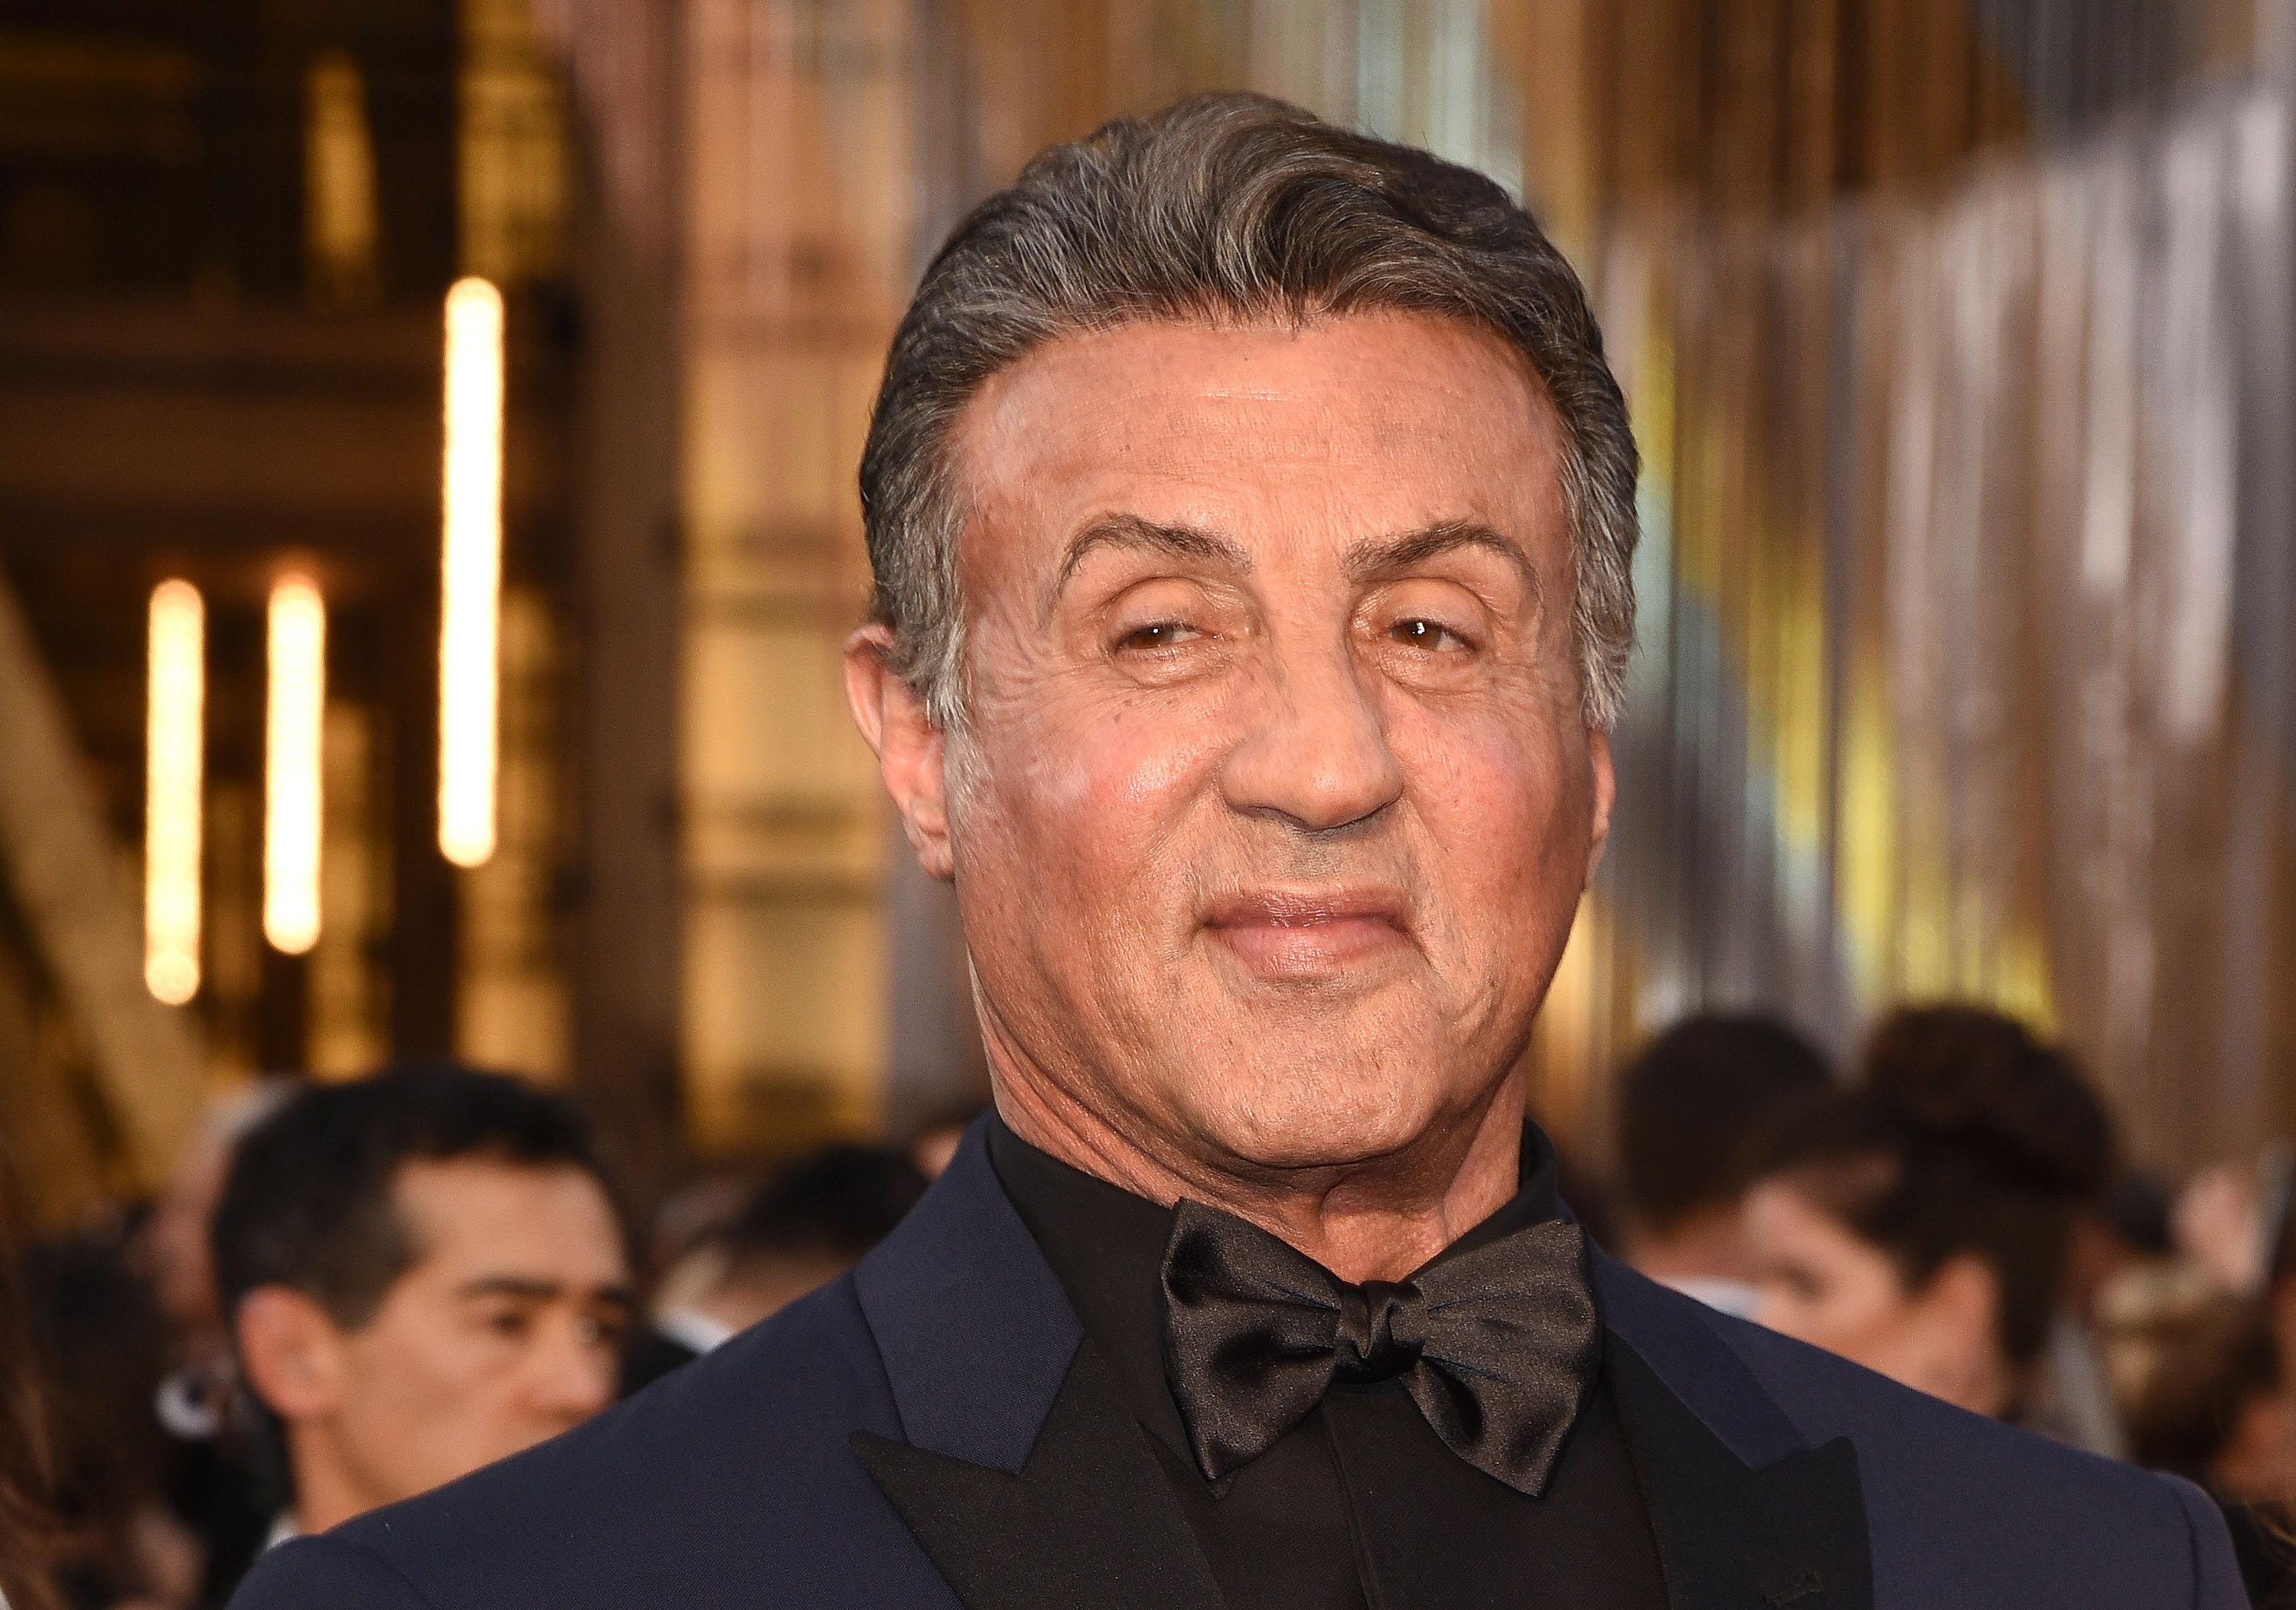 HOLLYWOOD, CA - FEBRUARY 28: Actor Sylvester Stallone attends the 88th Annual Academy Awards at Hollywood & Highland Center on February 28, 2016 in Hollywood, California. (Photo by C Flanigan/FilmMagic)